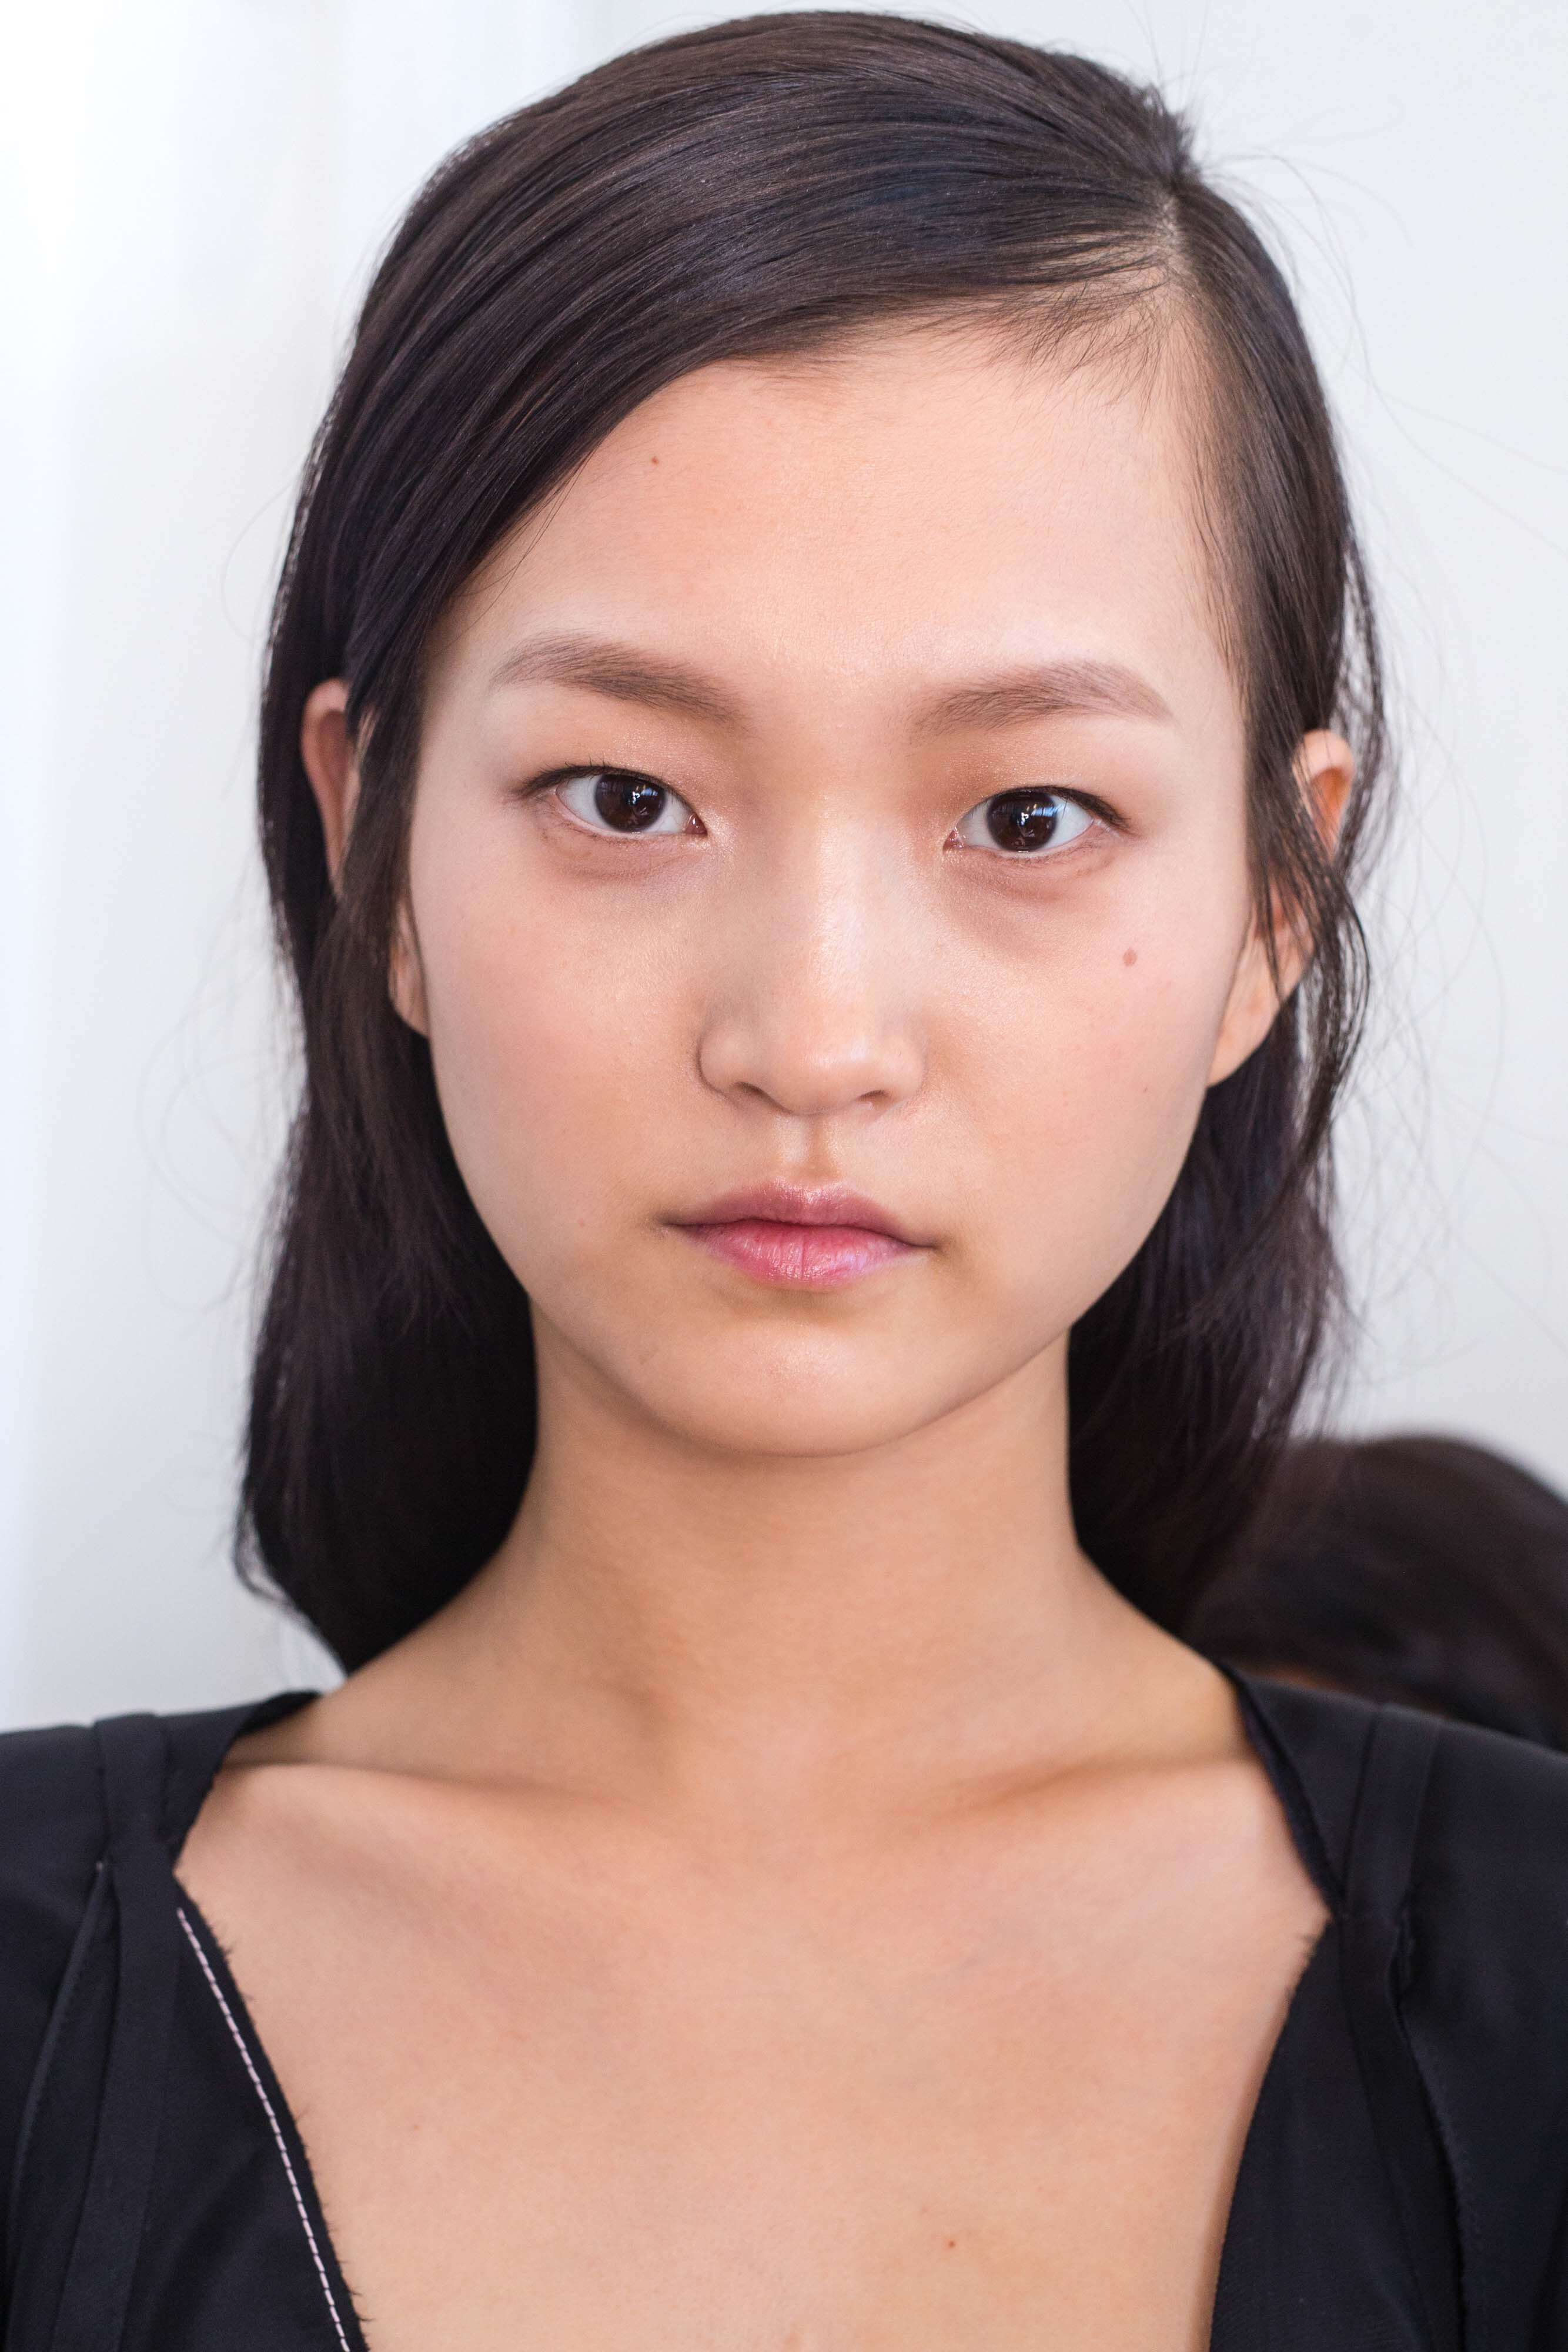 sideburn runway hair trends aw16 latest hairstyles